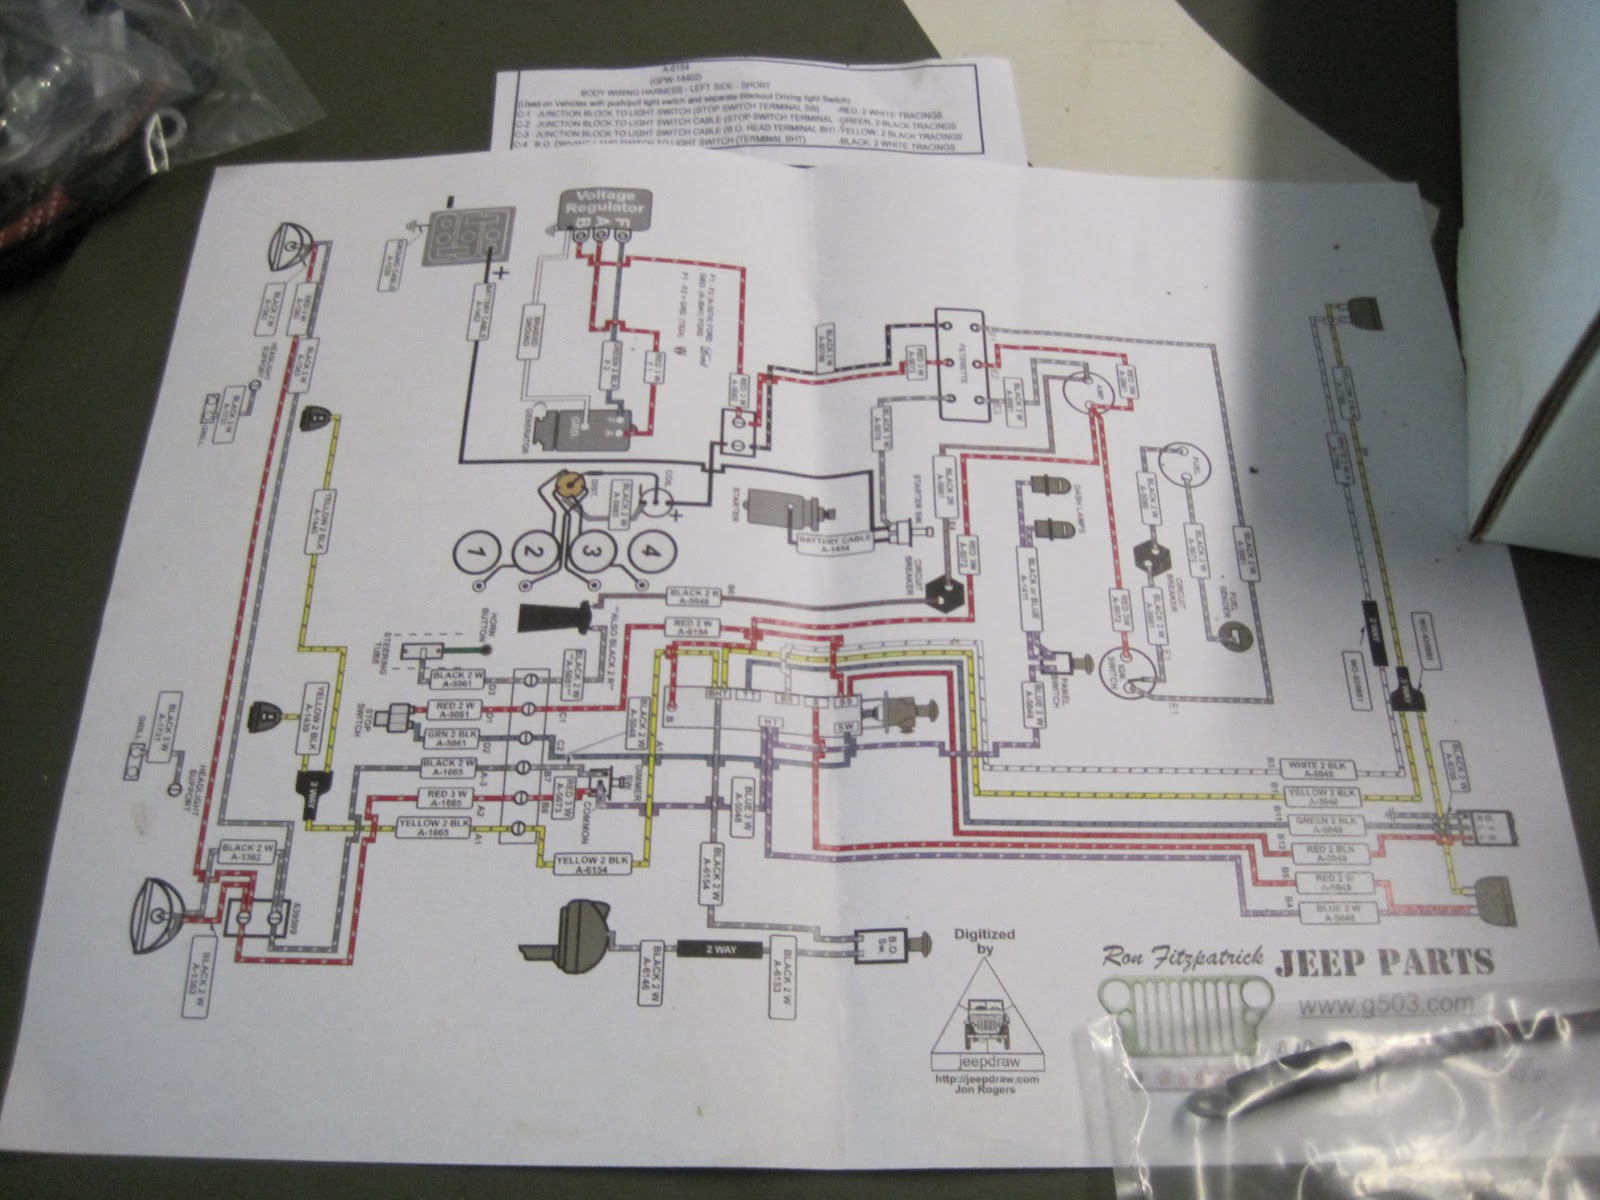 Swirlpot Diagram additionally C Bf Bf besides C Bf E furthermore Img besides Zswitchassembly Vdc. on fuel gauge wiring diagram